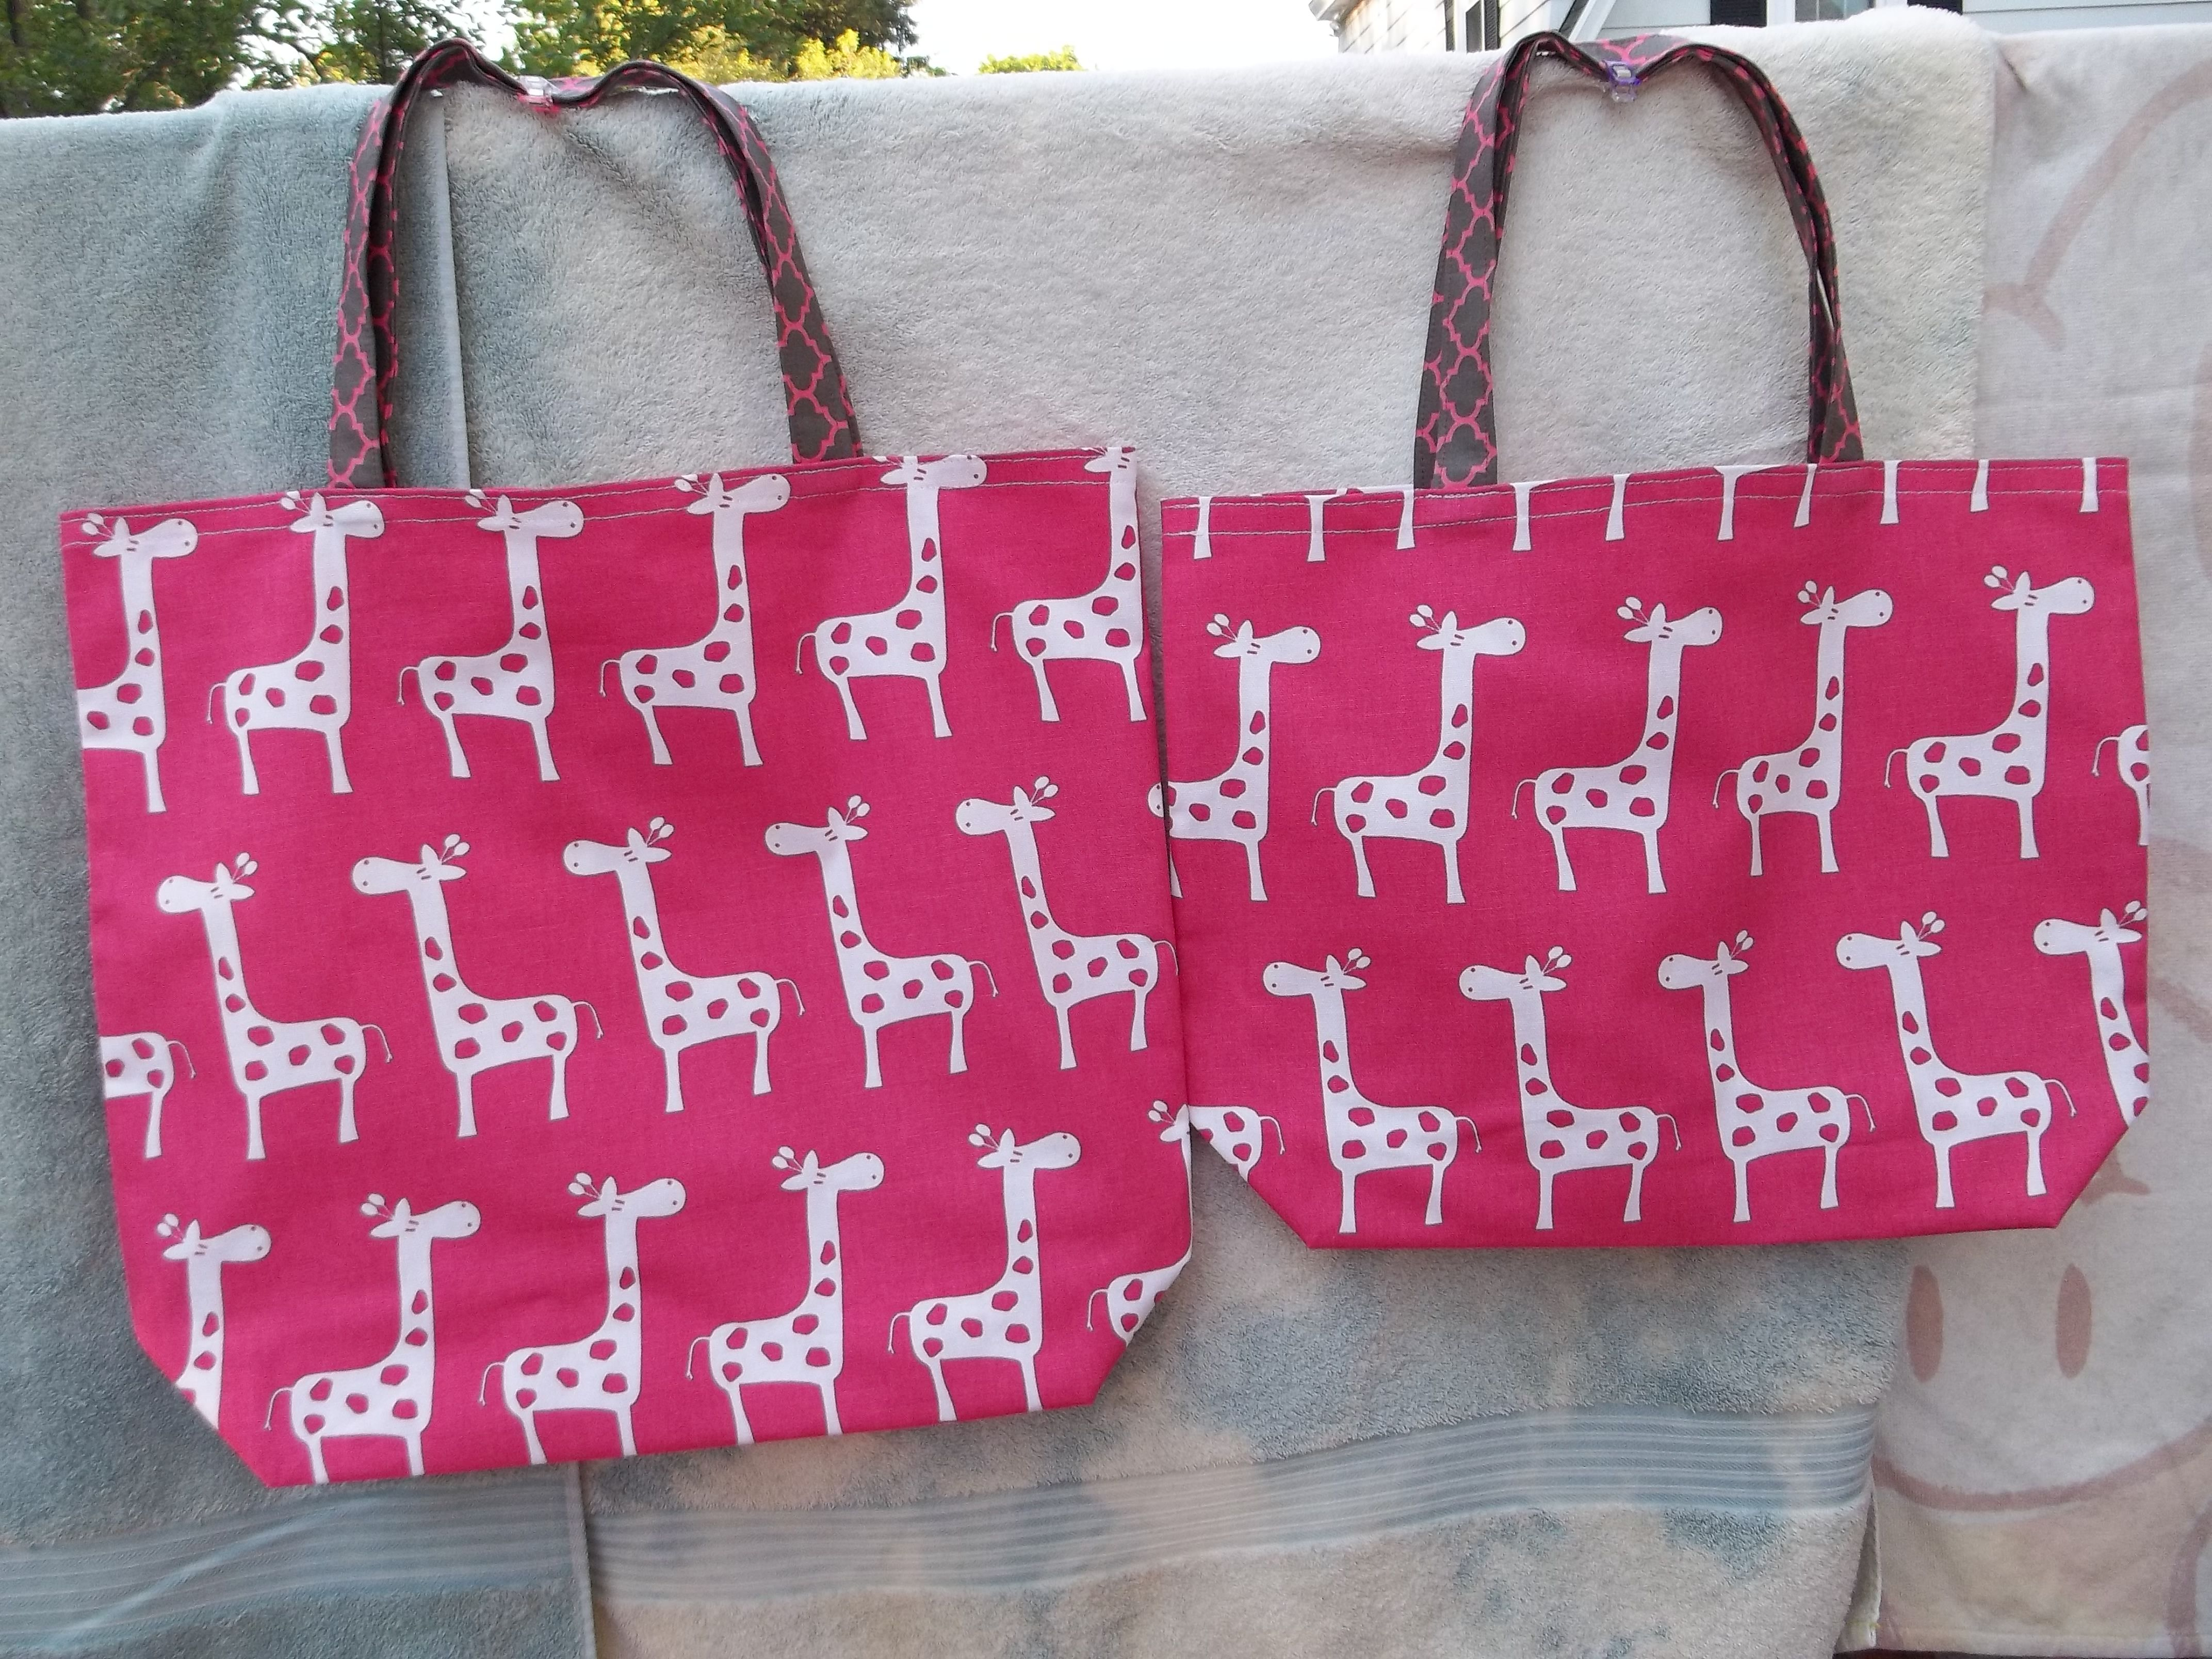 Giraffe canvas unlined totes